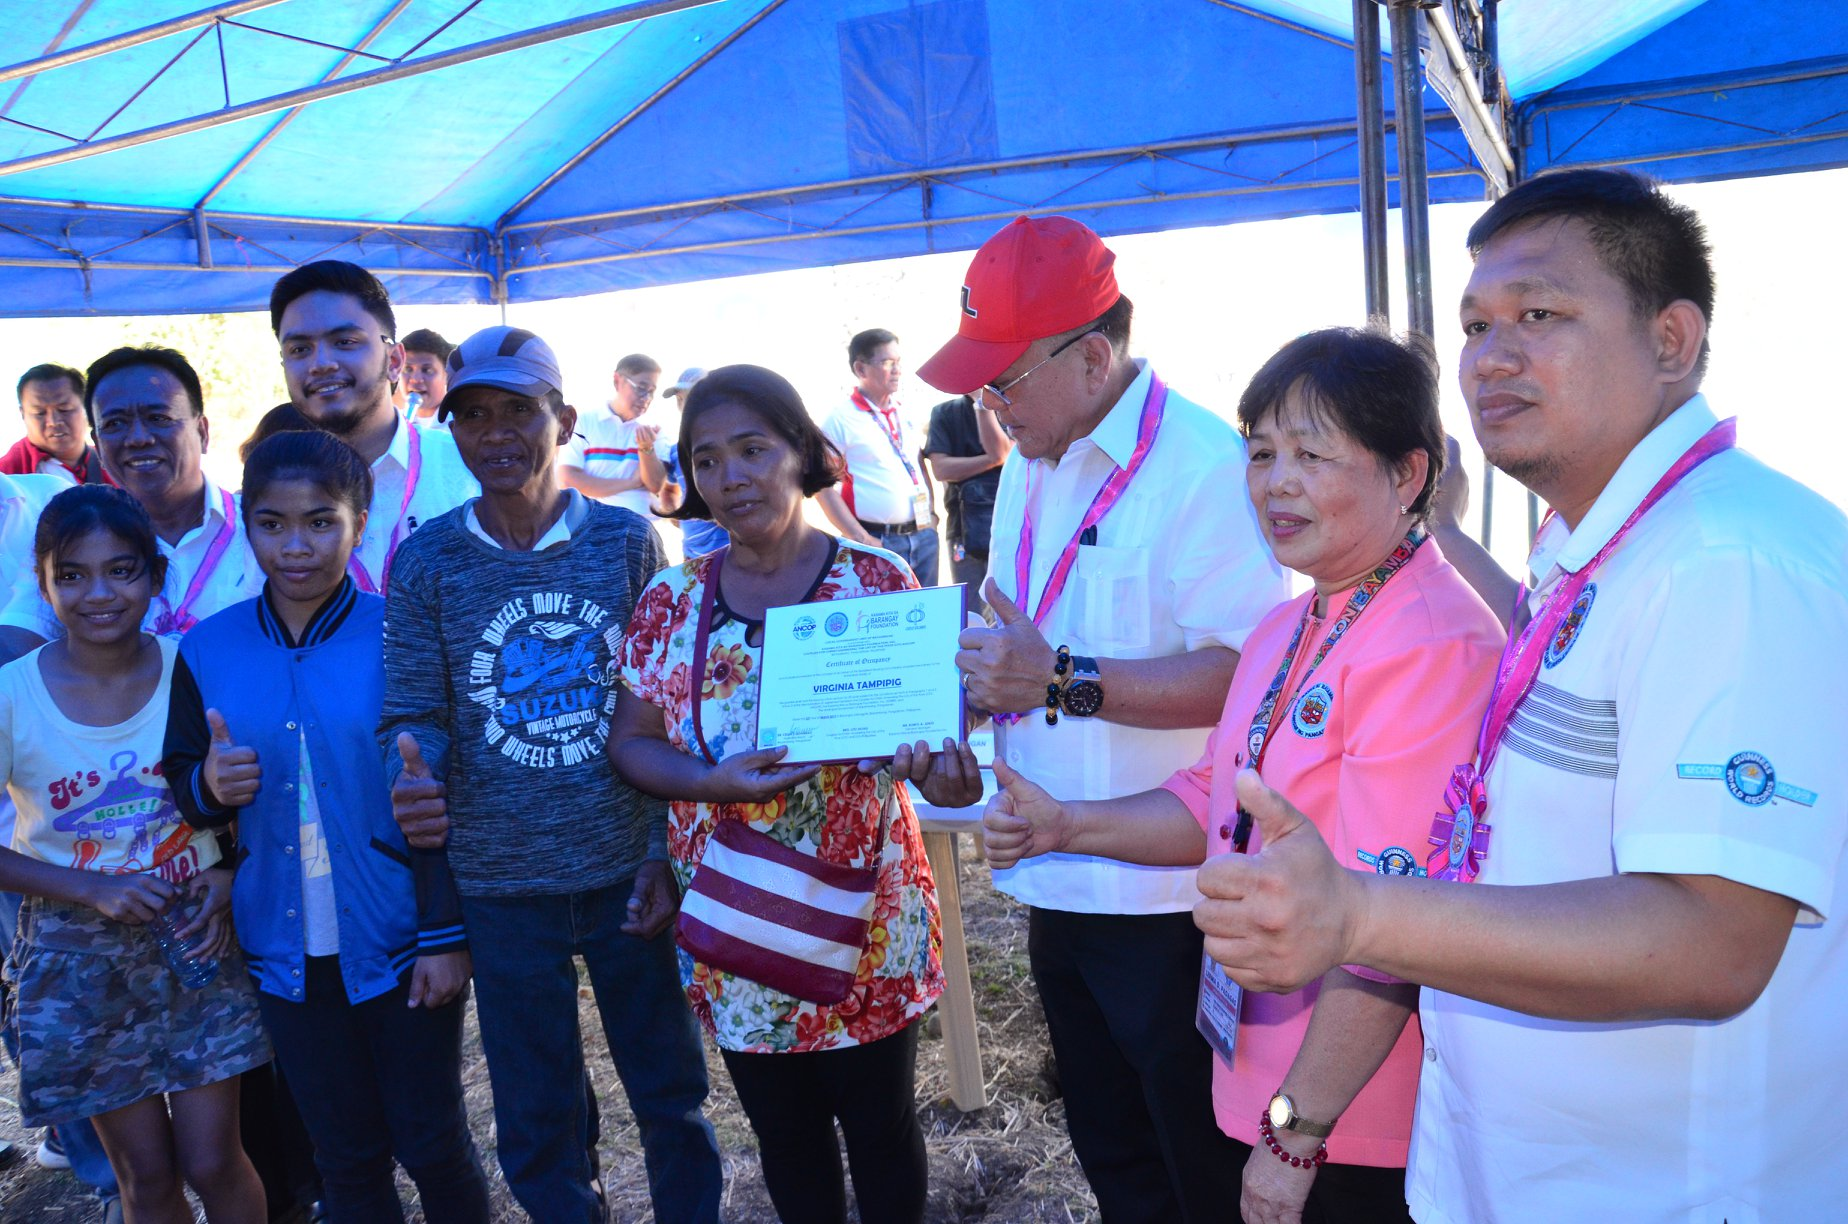 LAND DEVELOPER NA ANG LGU-BAYAMBANG!   Groundbreaking of LGU Bayambang Employees Housing Project, Signing of a Memorandum of Understanding and Distribution of Notice of Approval for the Villa Magsaysay Housing Project, and Awarding of 30 Housing Units for the CFC-ANCOP Village Socialized Housing Project